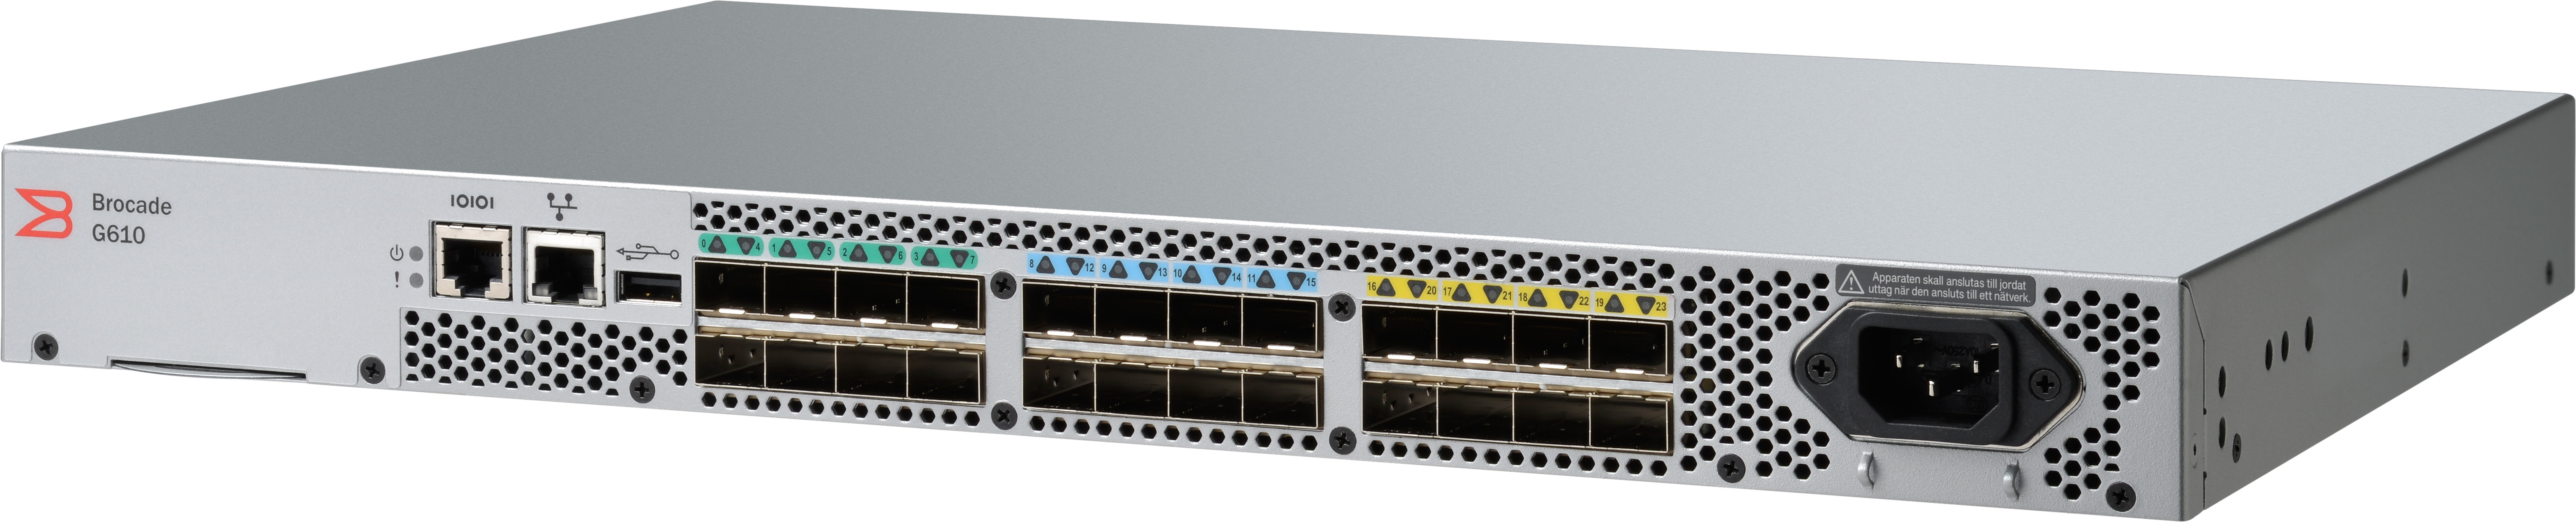 Brocade Launches Entry-Level Fibre Channel Switch - Packet